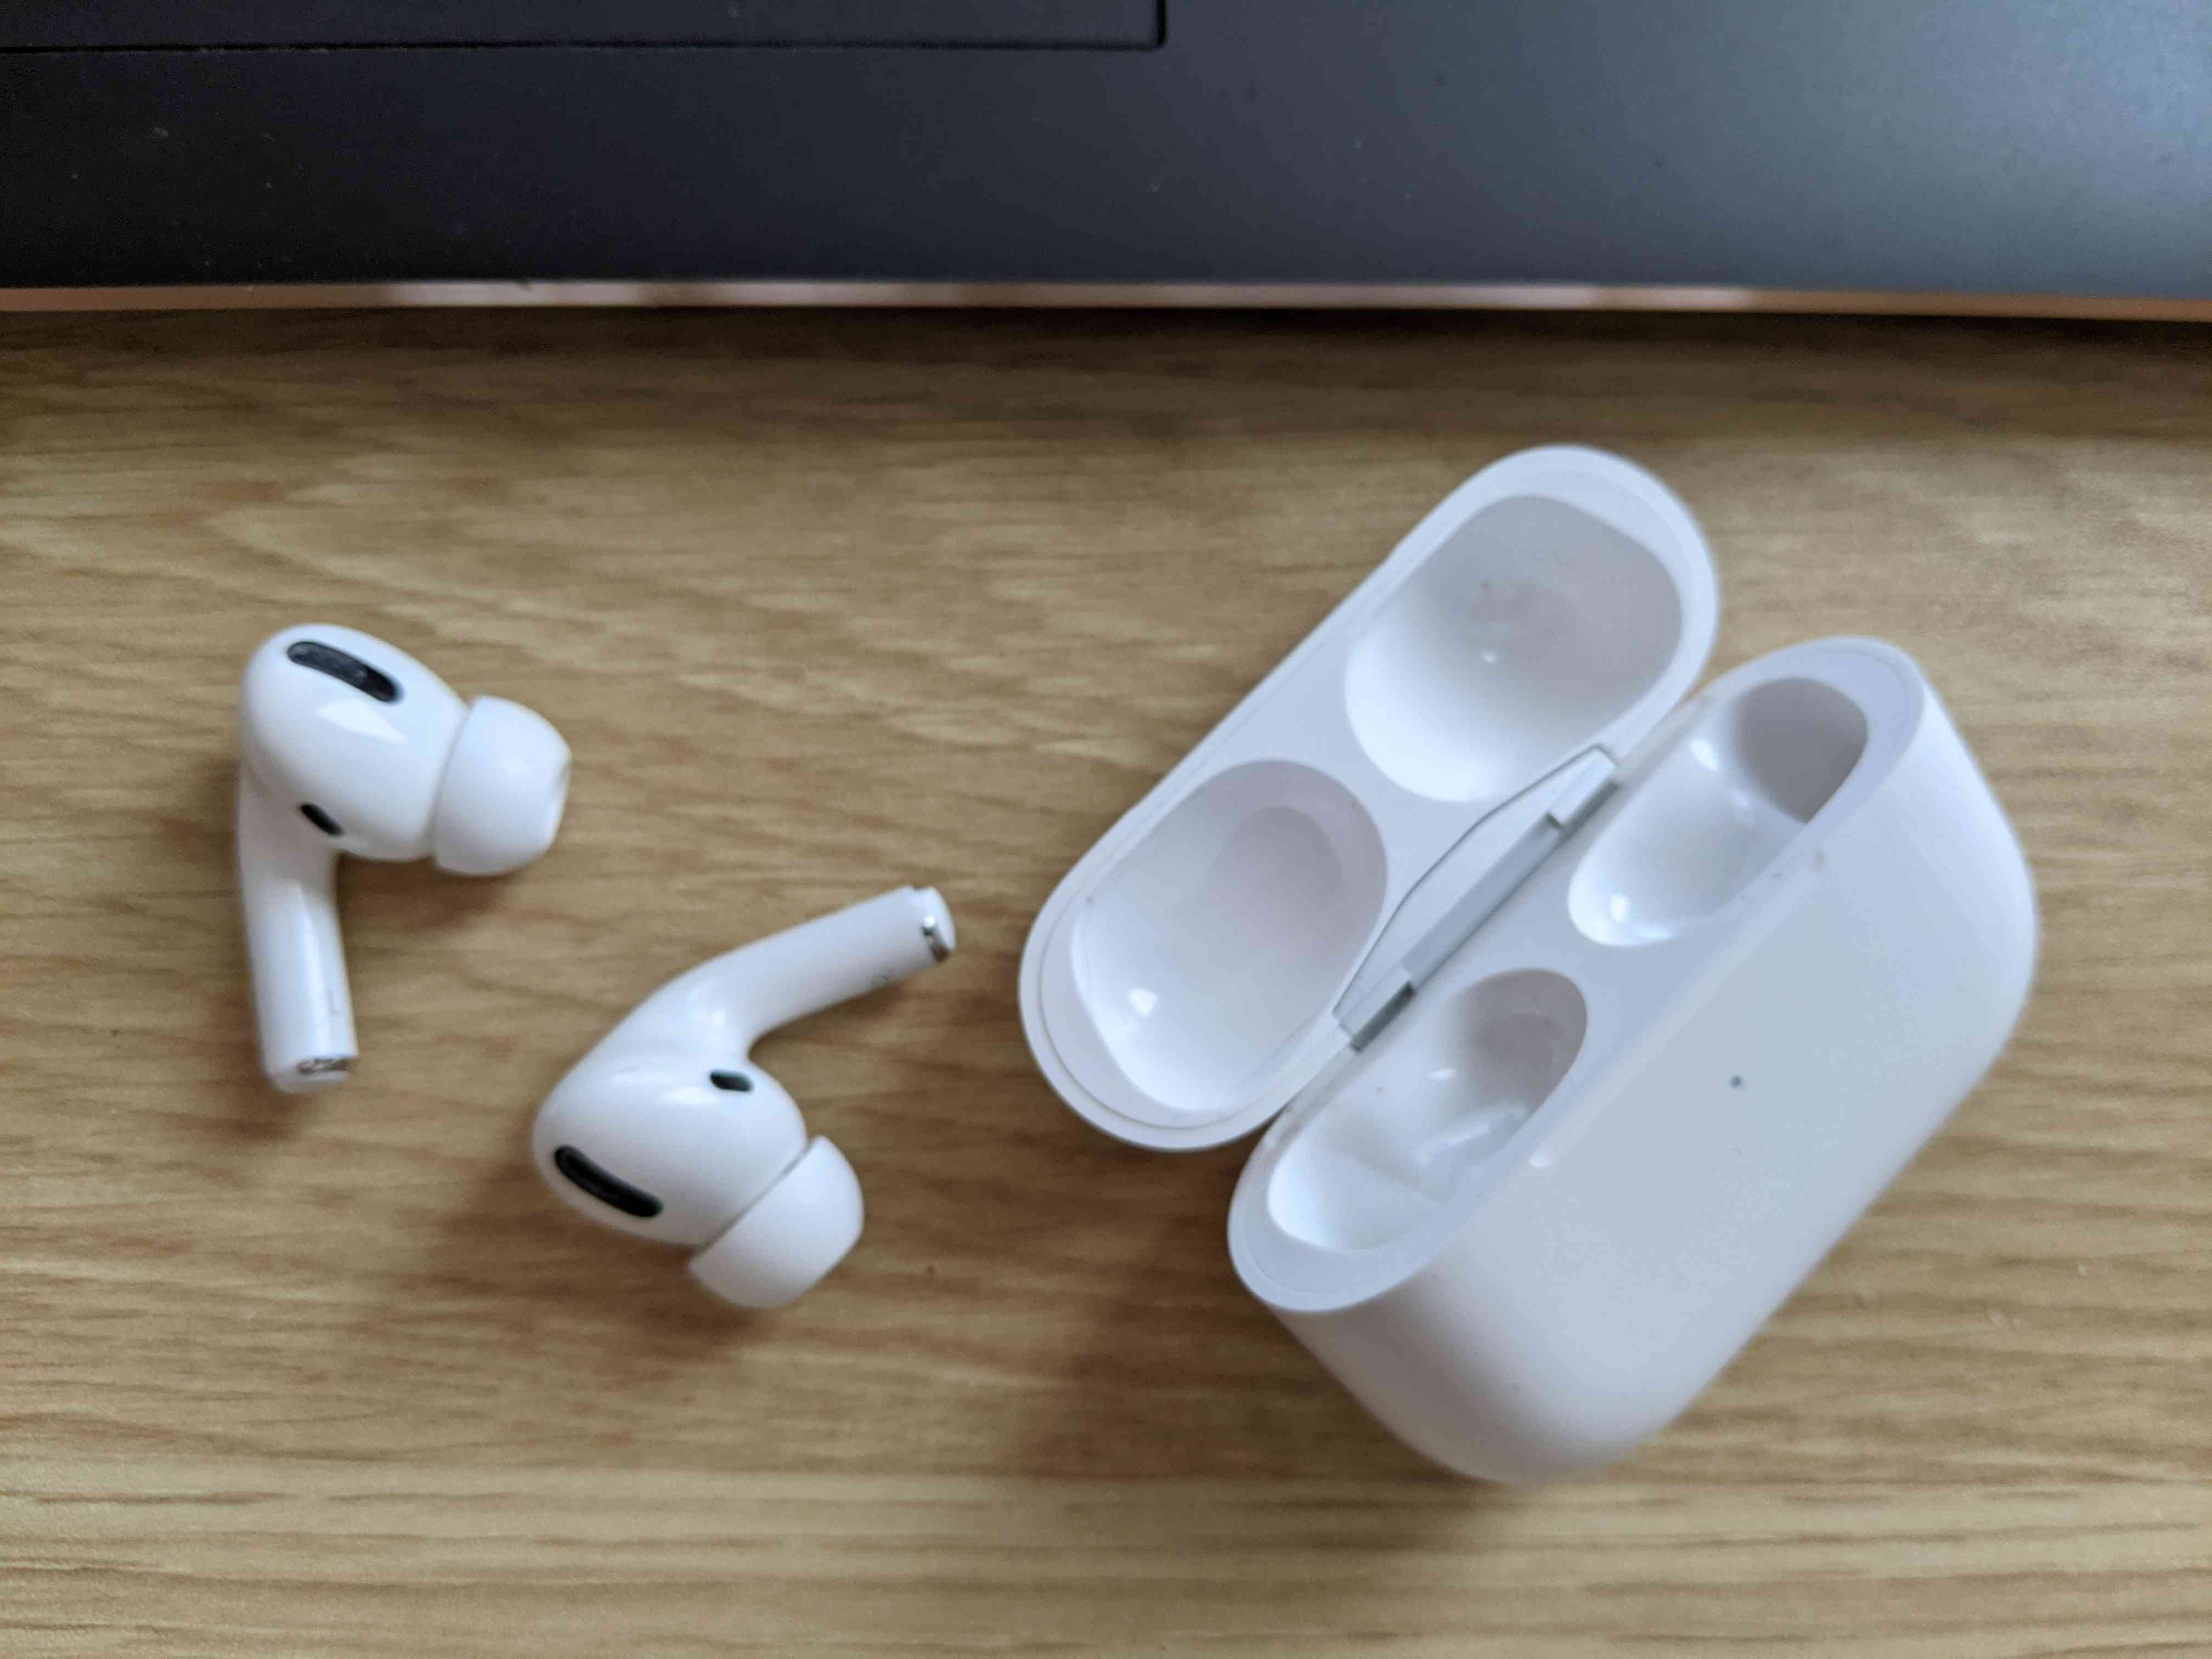 AirPods Pro removed from their case next to an HP laptop.